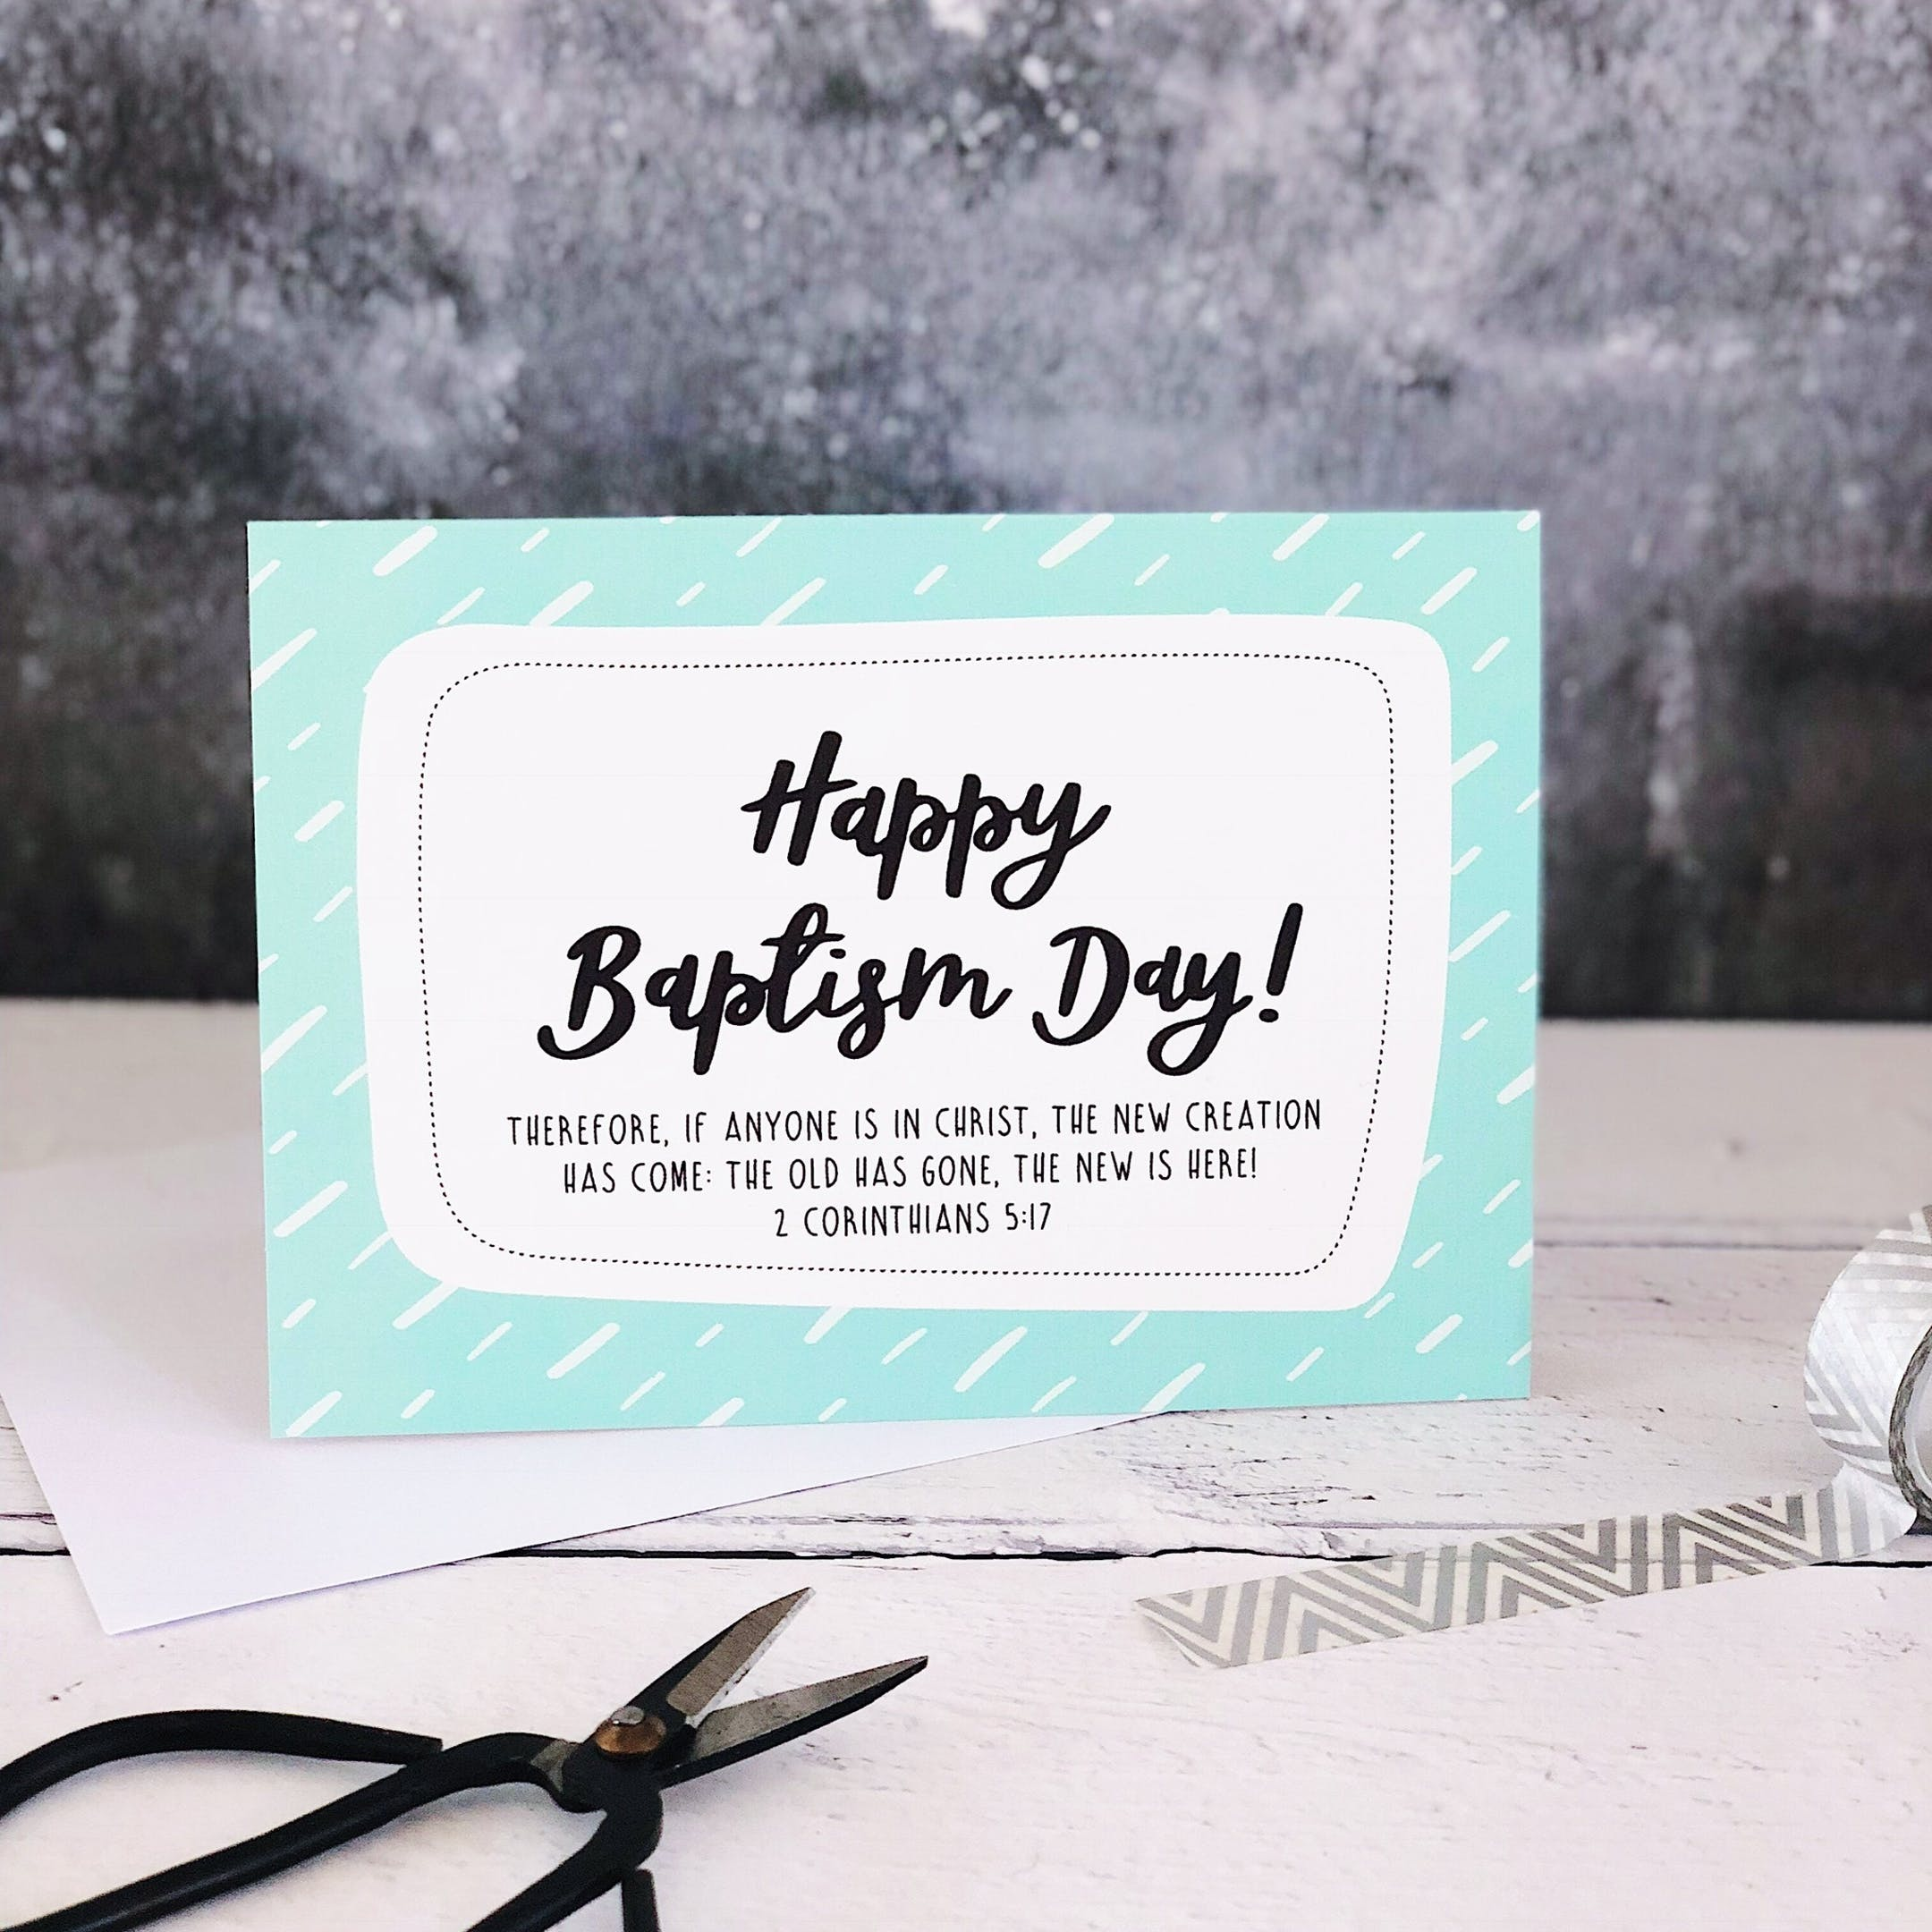 A6 Happy Baptism Day! Card - Izzy and Pop